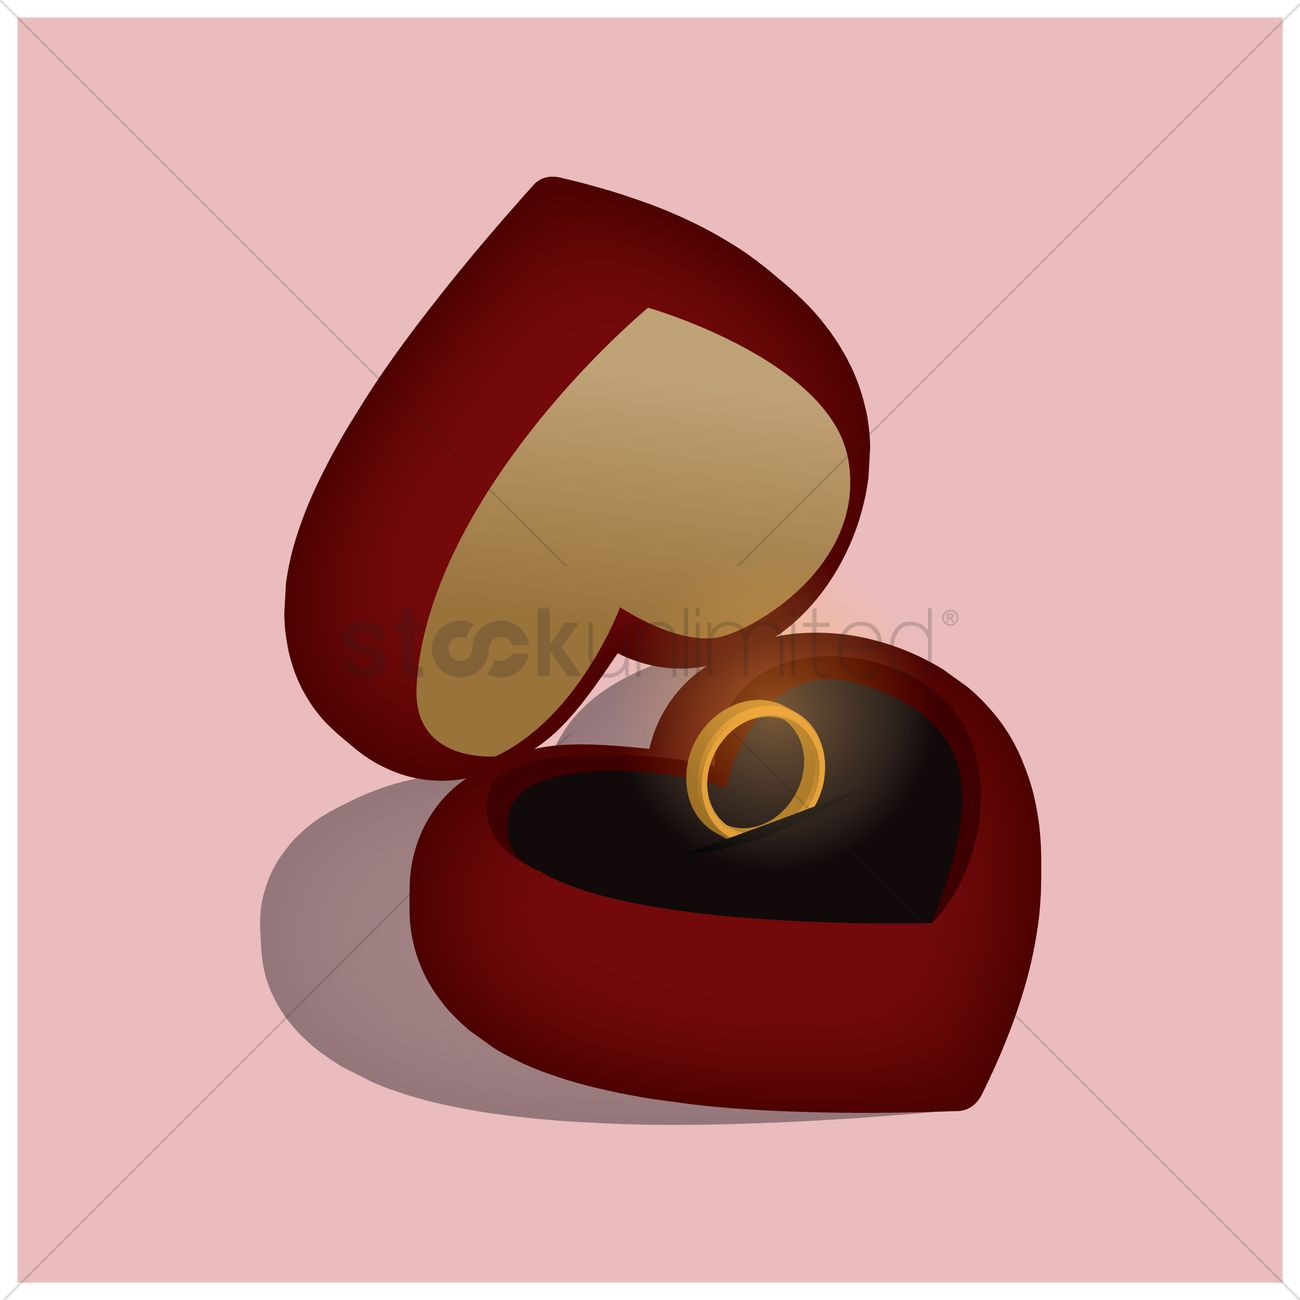 Wedding ring in gift box Vector Image - 1433267 | StockUnlimited